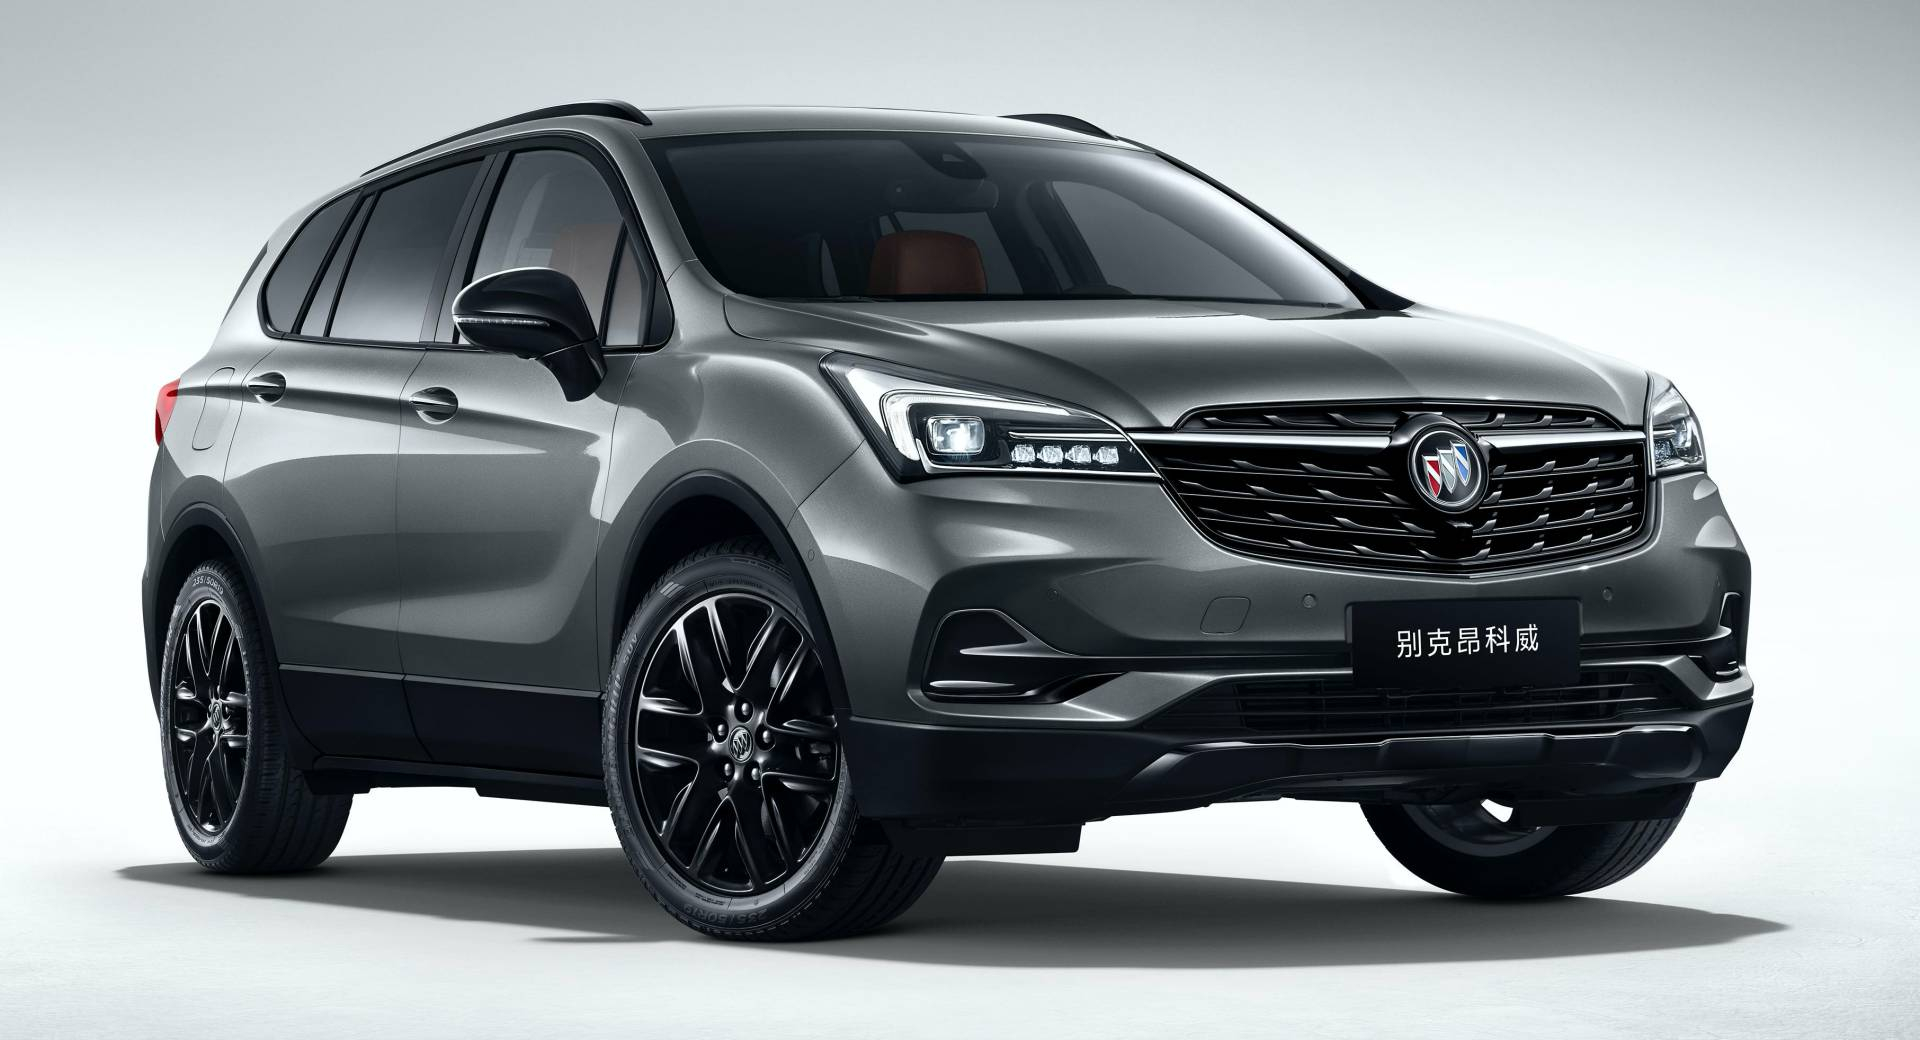 2020 Buick Envision Facelift And New Enclave Suvs Go How Much Is 2022 Buick Envision